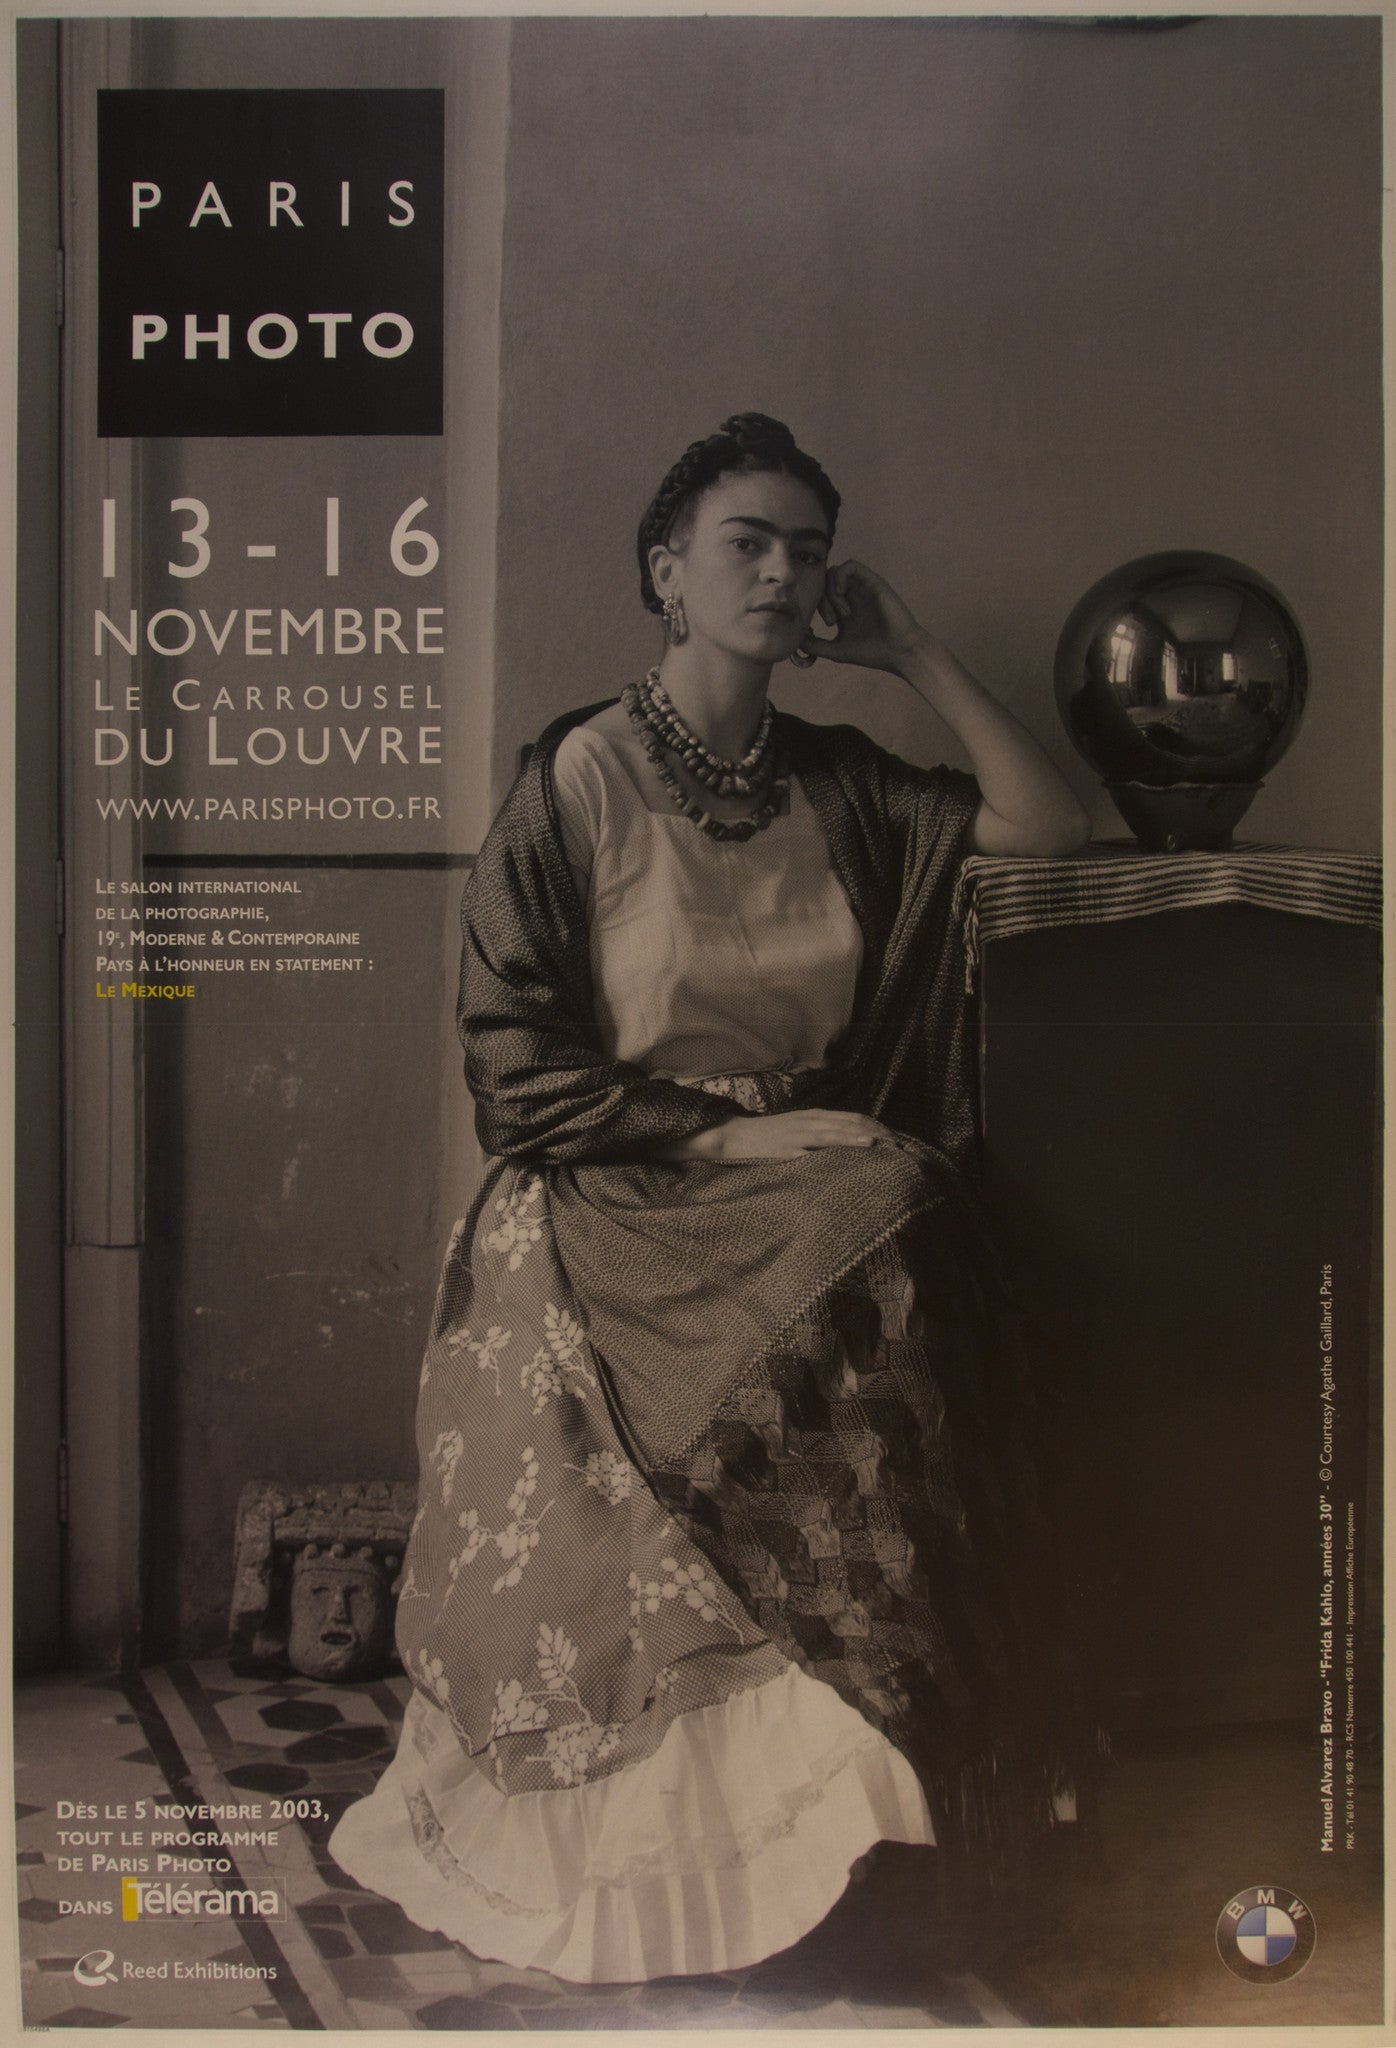 Paris Photo Frida Kahlo